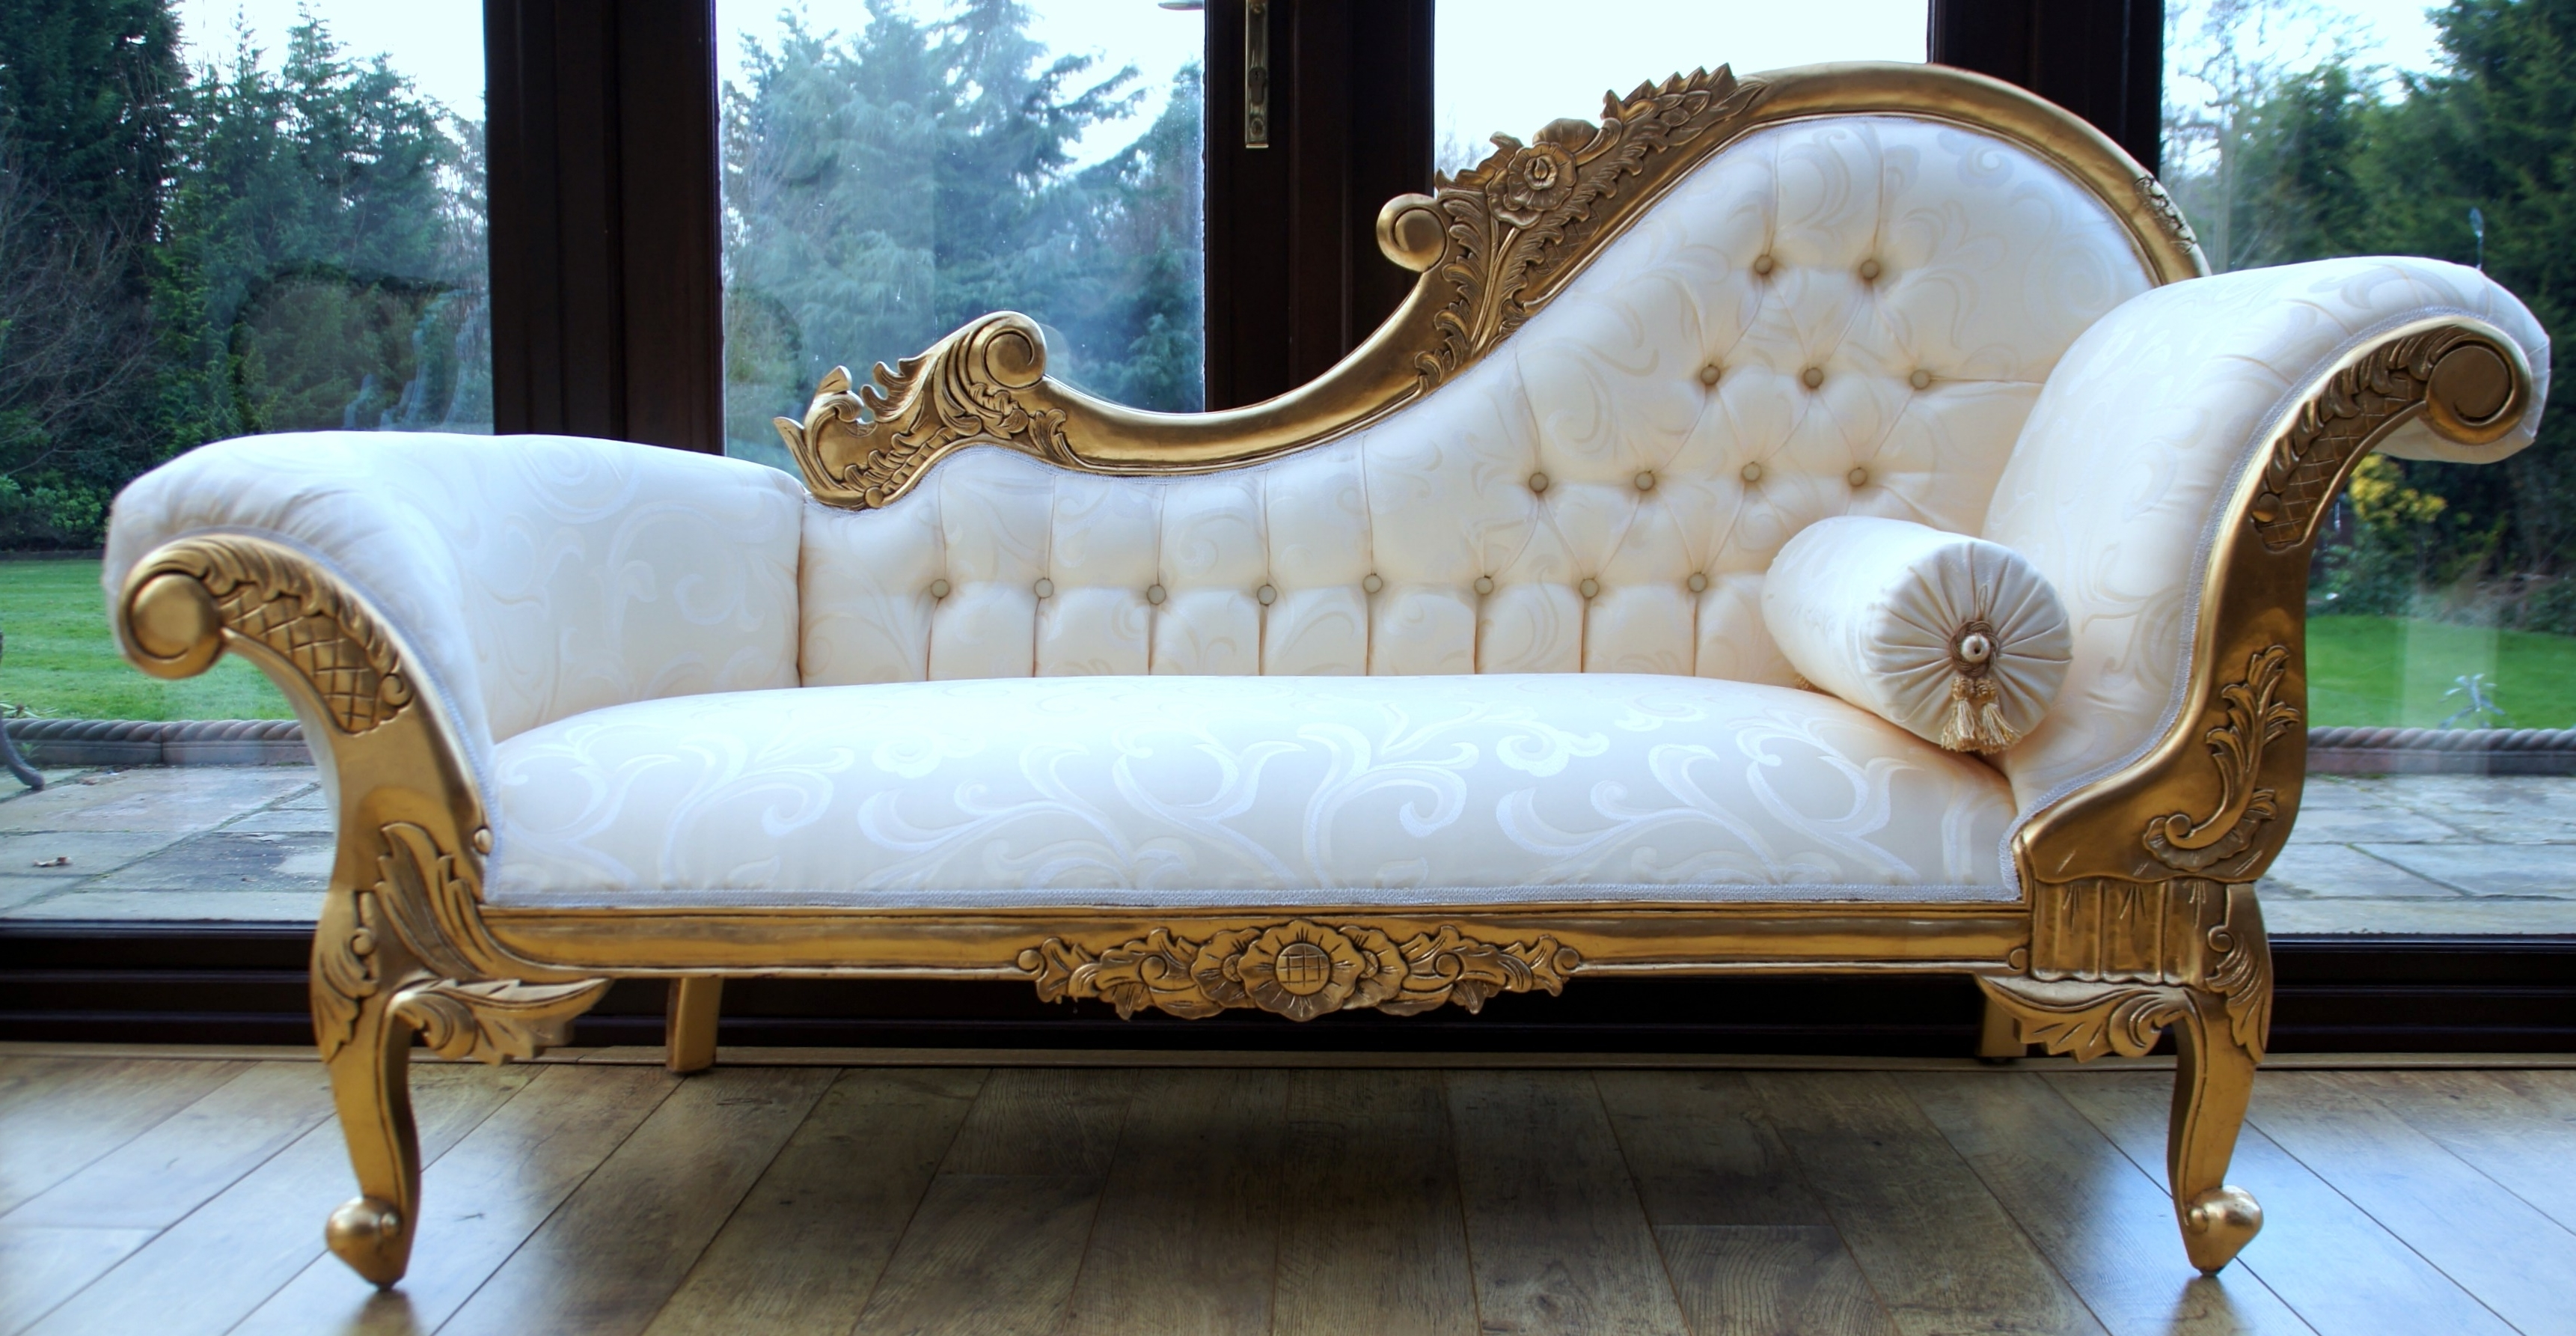 Bedroom Ideas : Magnificent Cool White And Intricate Carved Gold Throughout Most Current Gold Chaise Lounges (View 4 of 15)